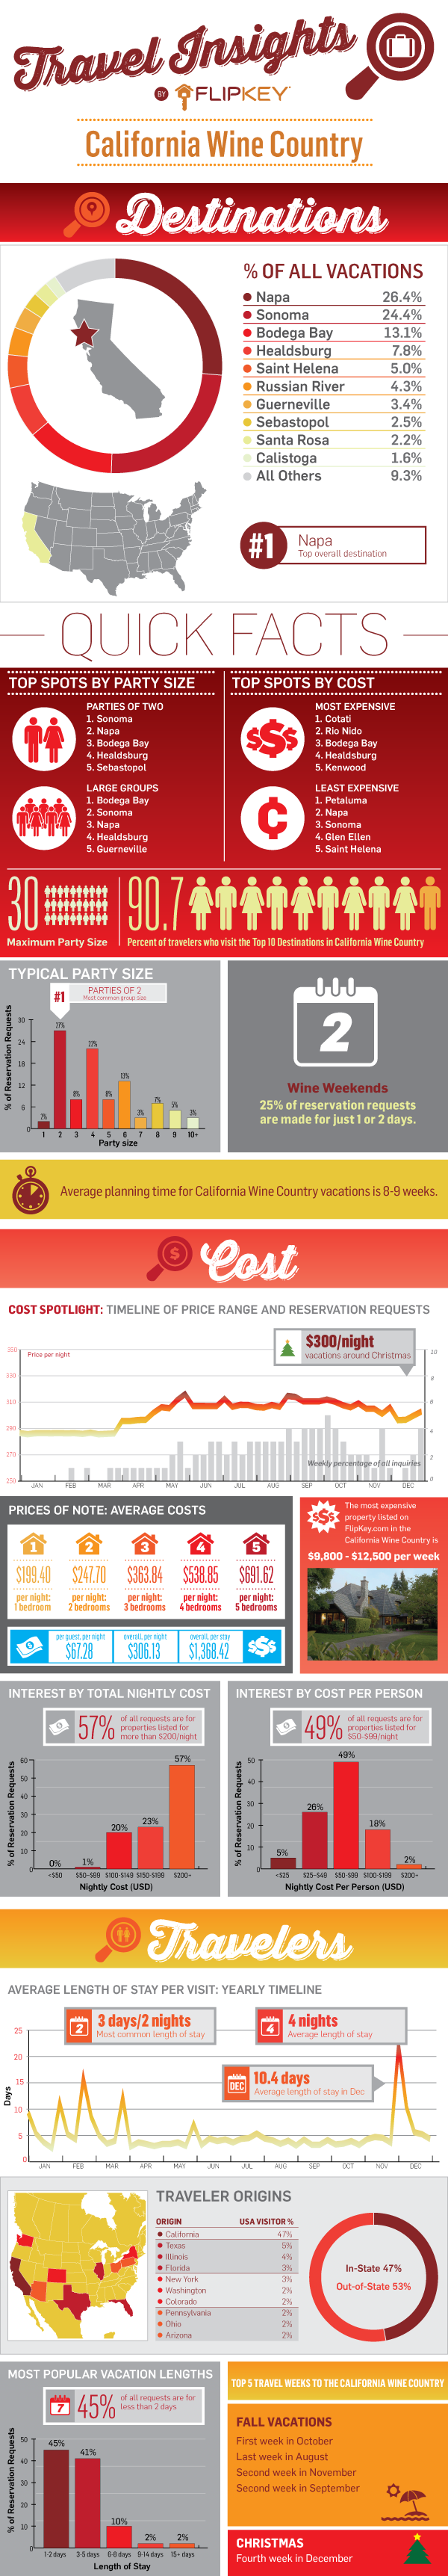 Wine Country Travel Insights Infographic